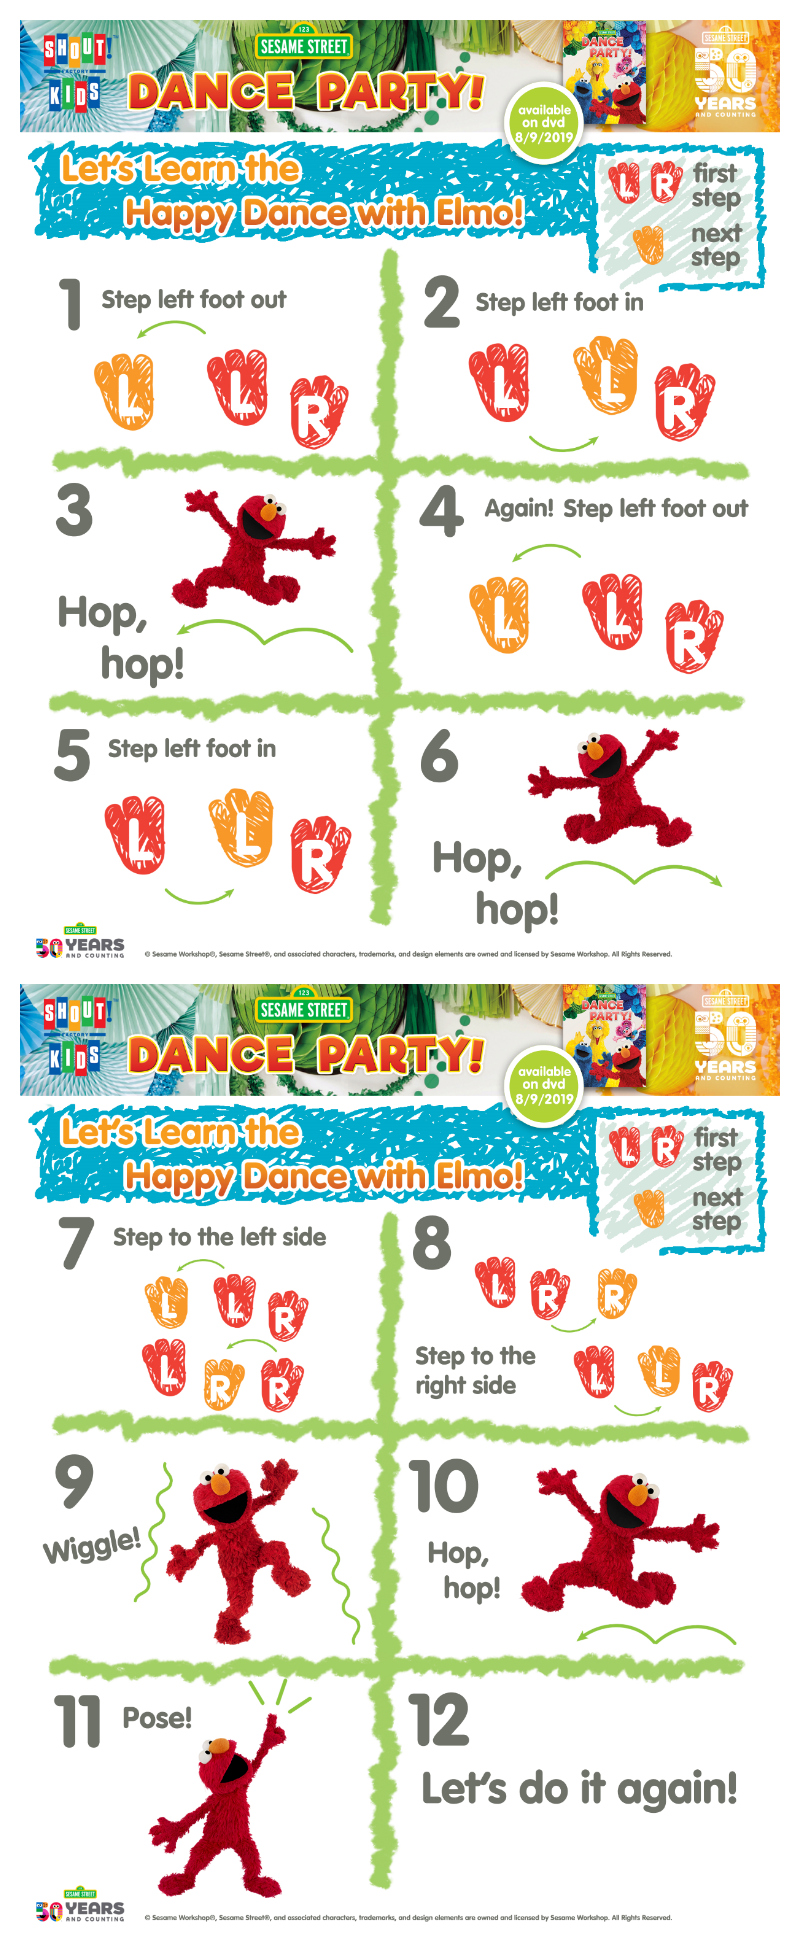 Elmo Happy Dance Instructions for Kids - Free Printable Sesame Street Activity Page